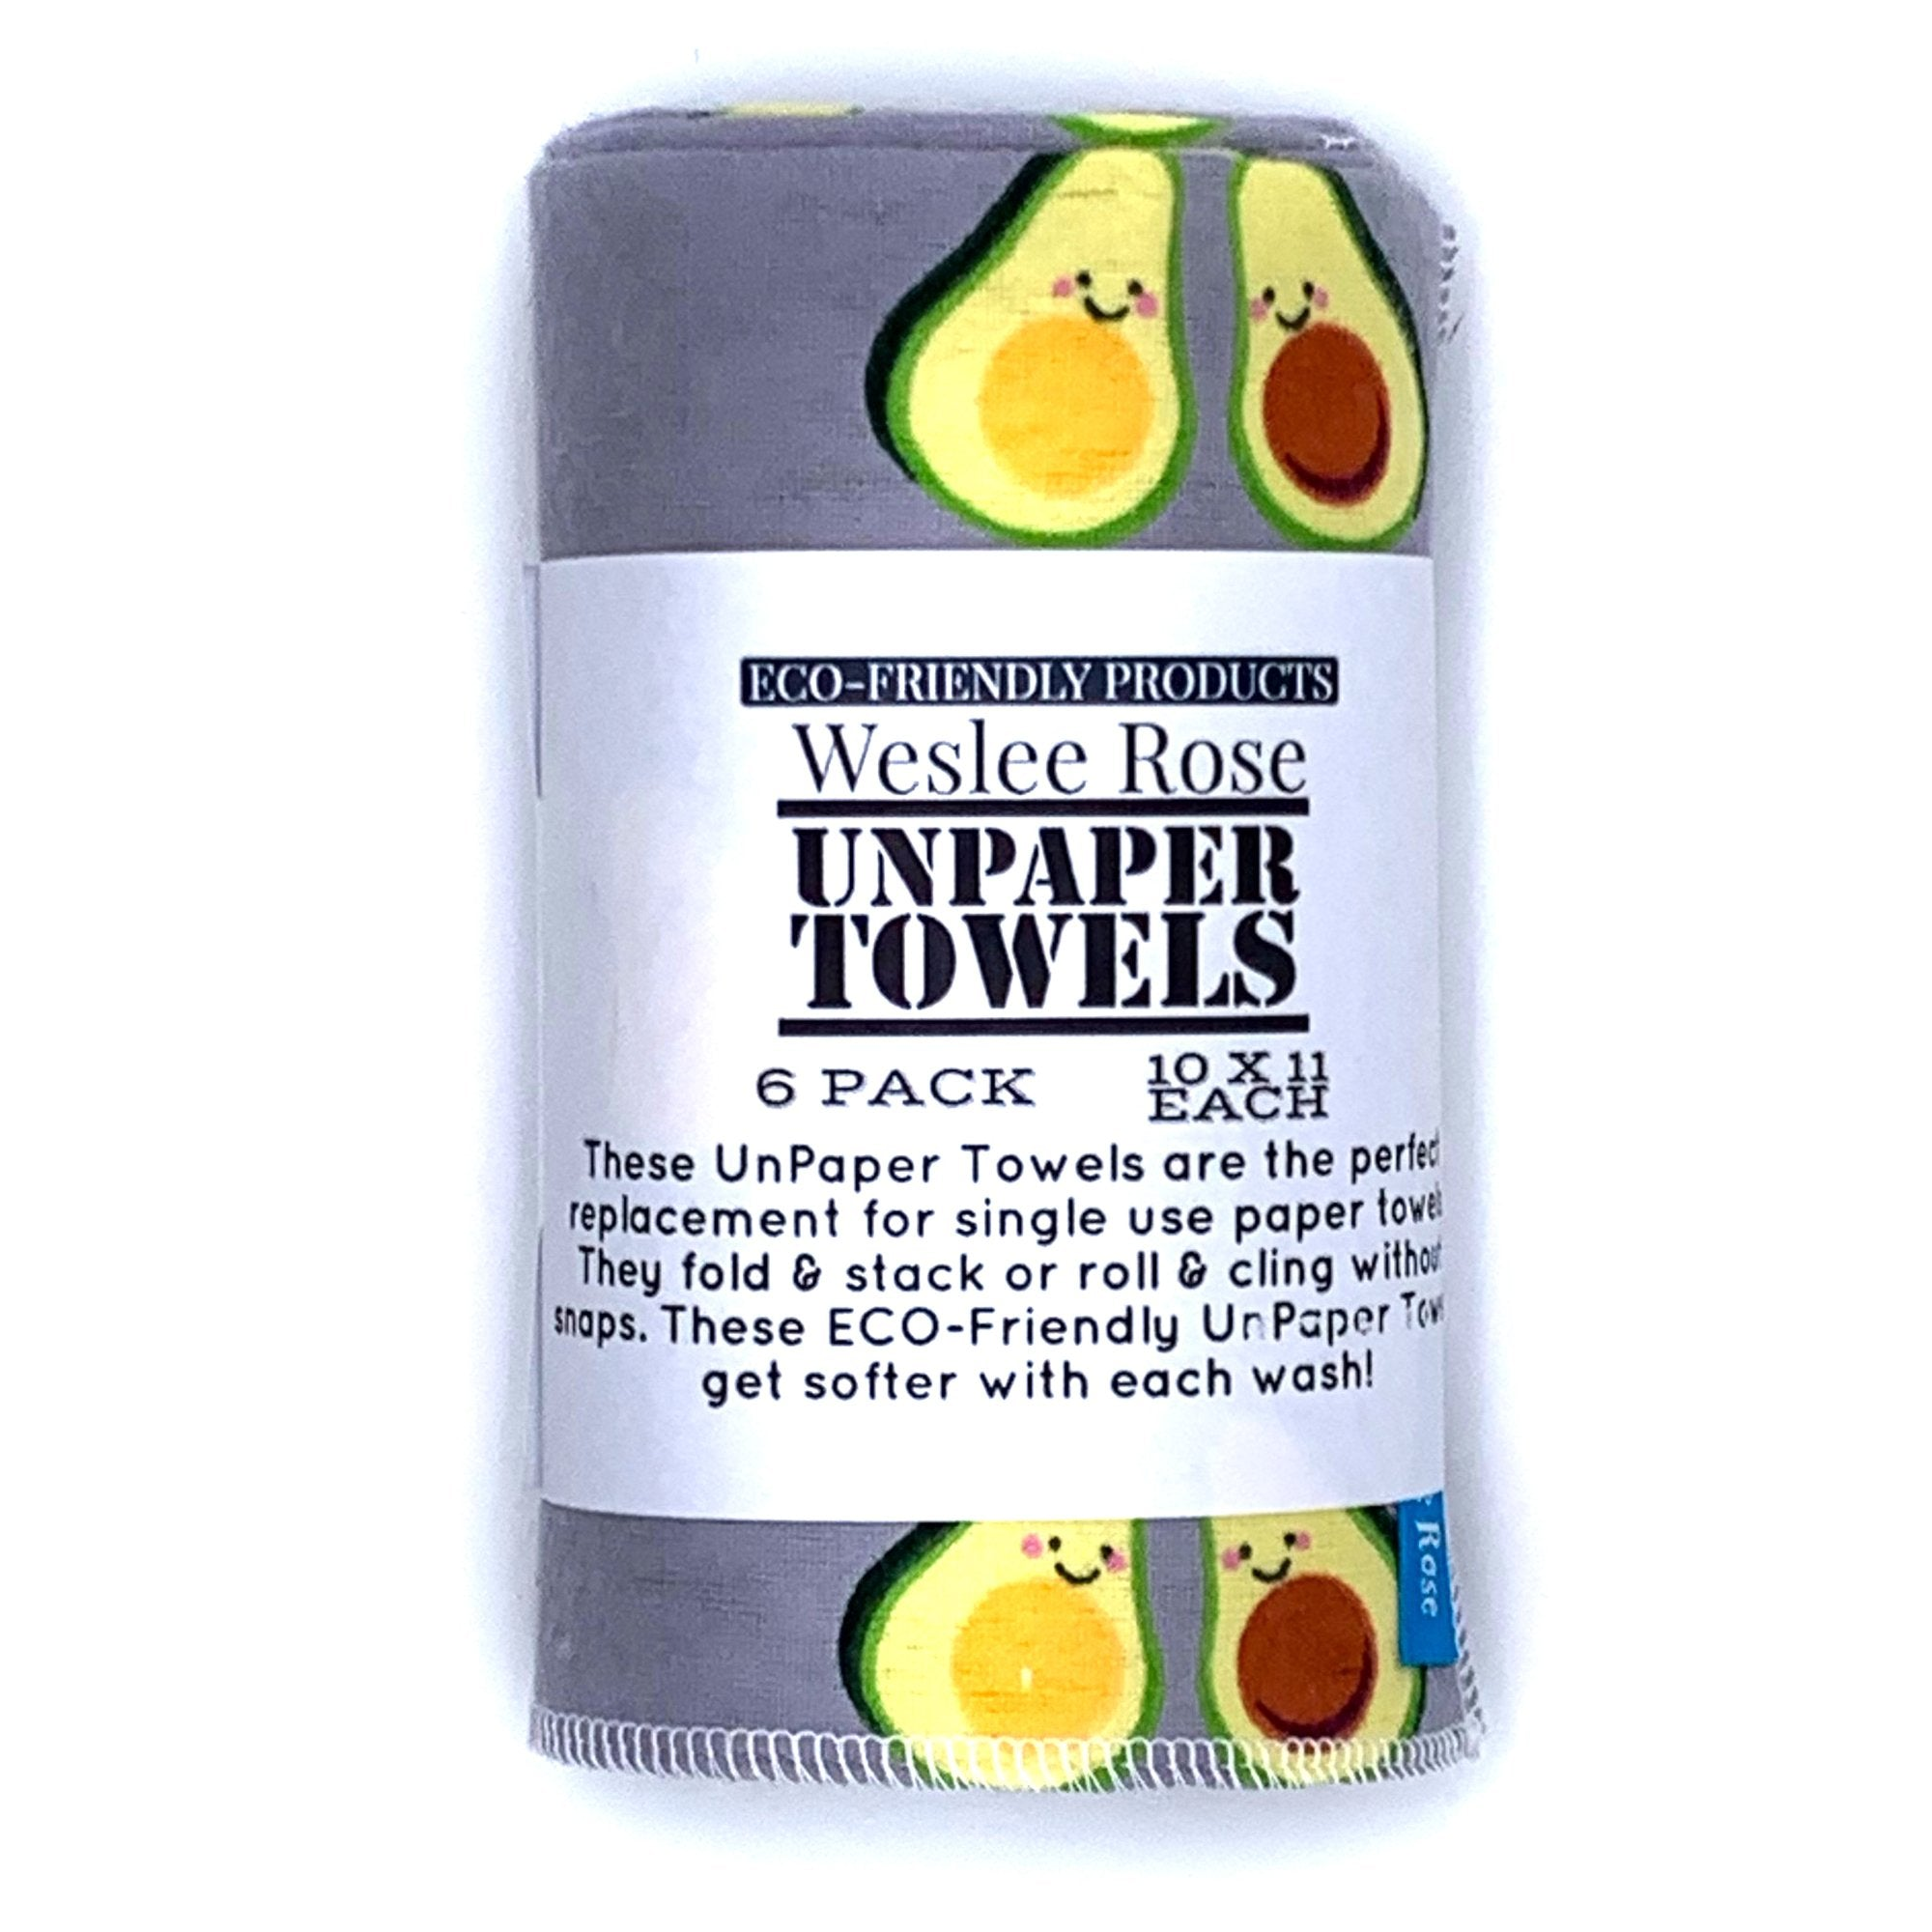 Reusable UnPaper Towels